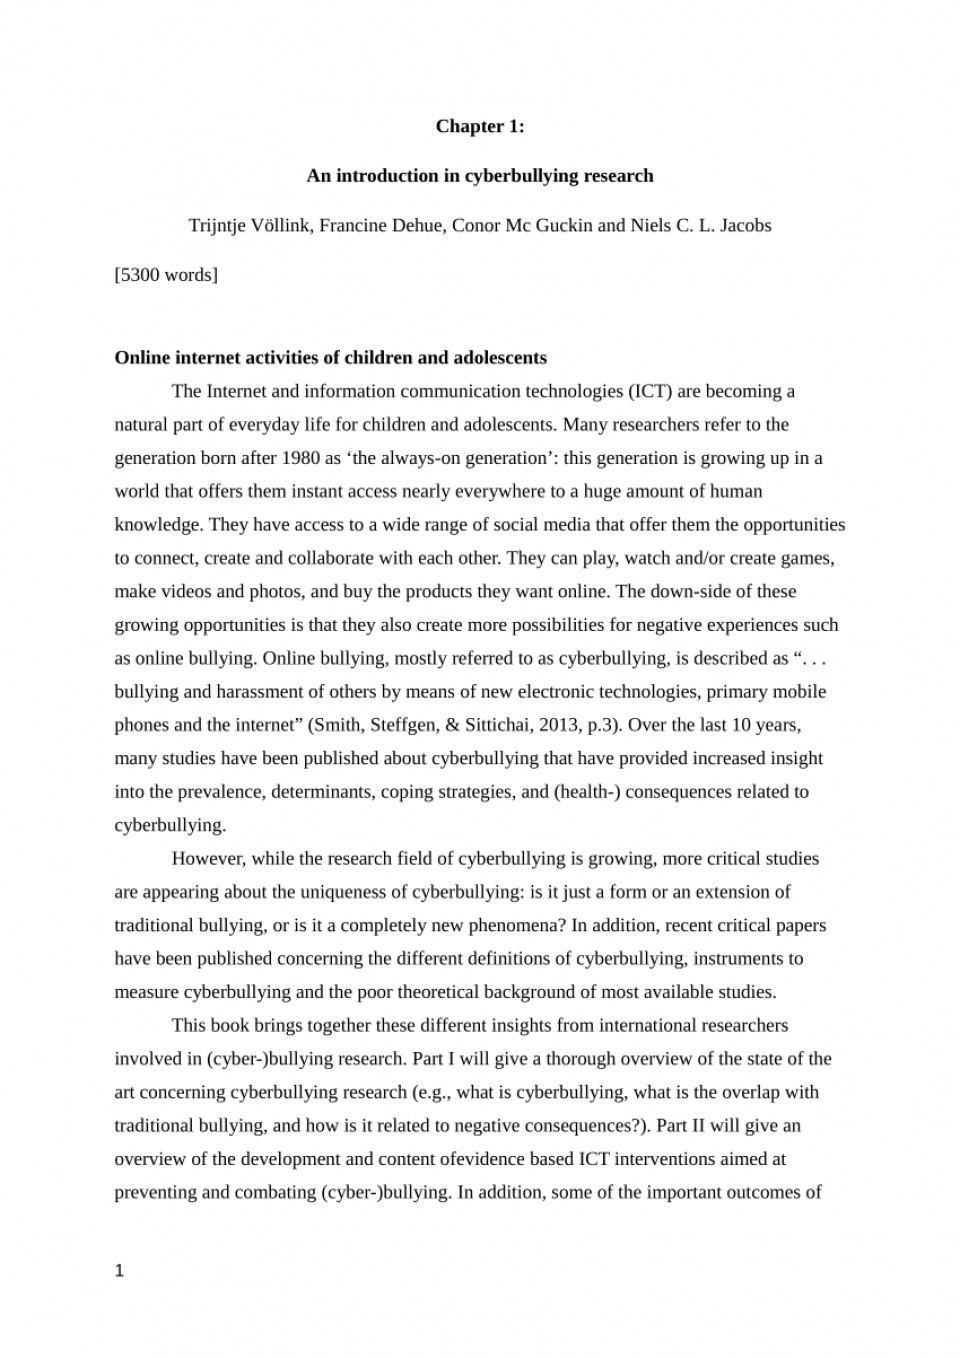 001 Research Paper Cyberbullying Introduction Magnificent Cyber Bullying Paragraph About Background Of The Study 960